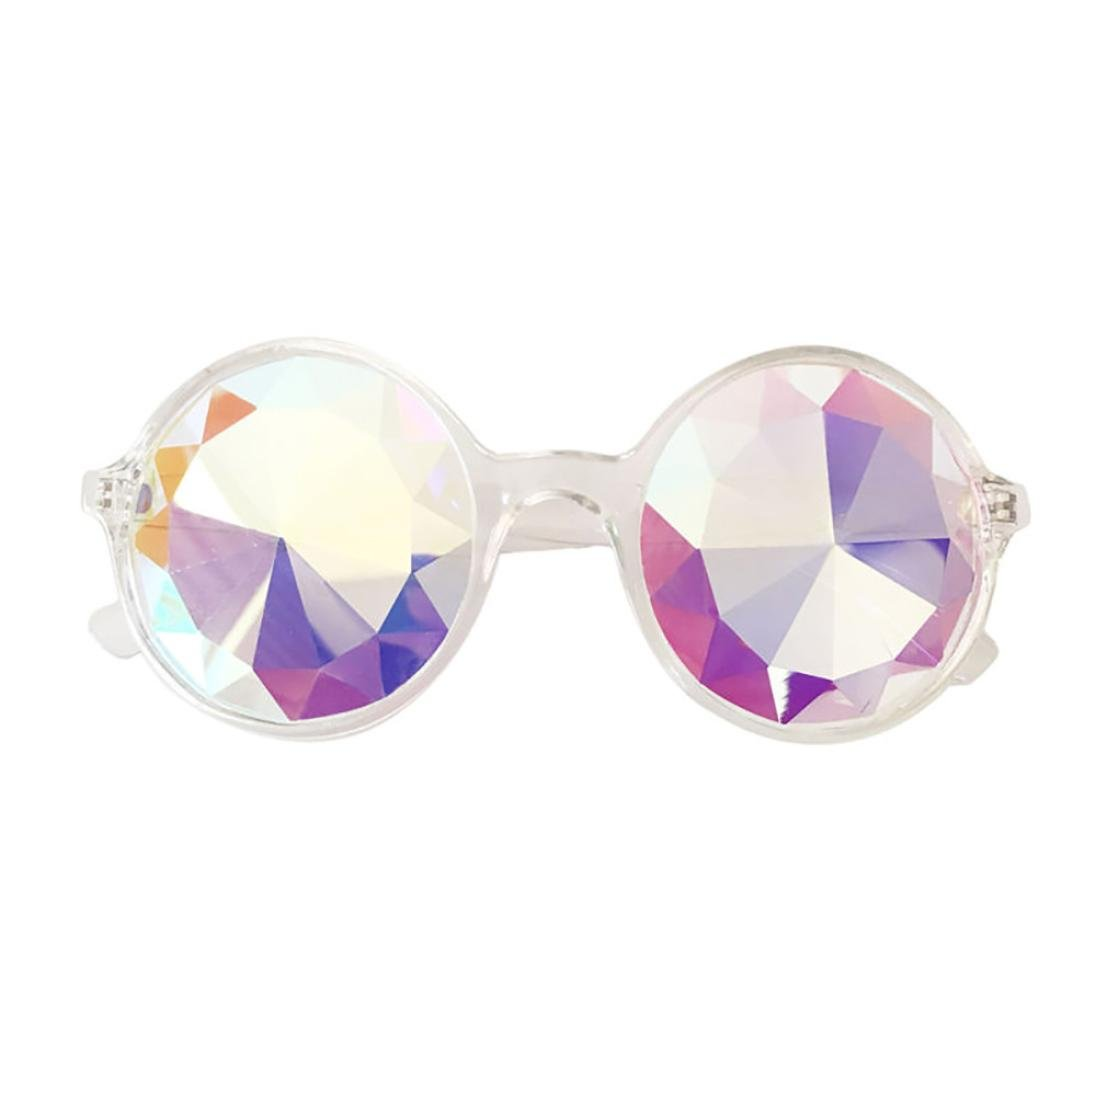 Sunfei Kaleidoscope Glasses Rave Festival Party EDM Sunglasses Diffracted Lens (Clear)